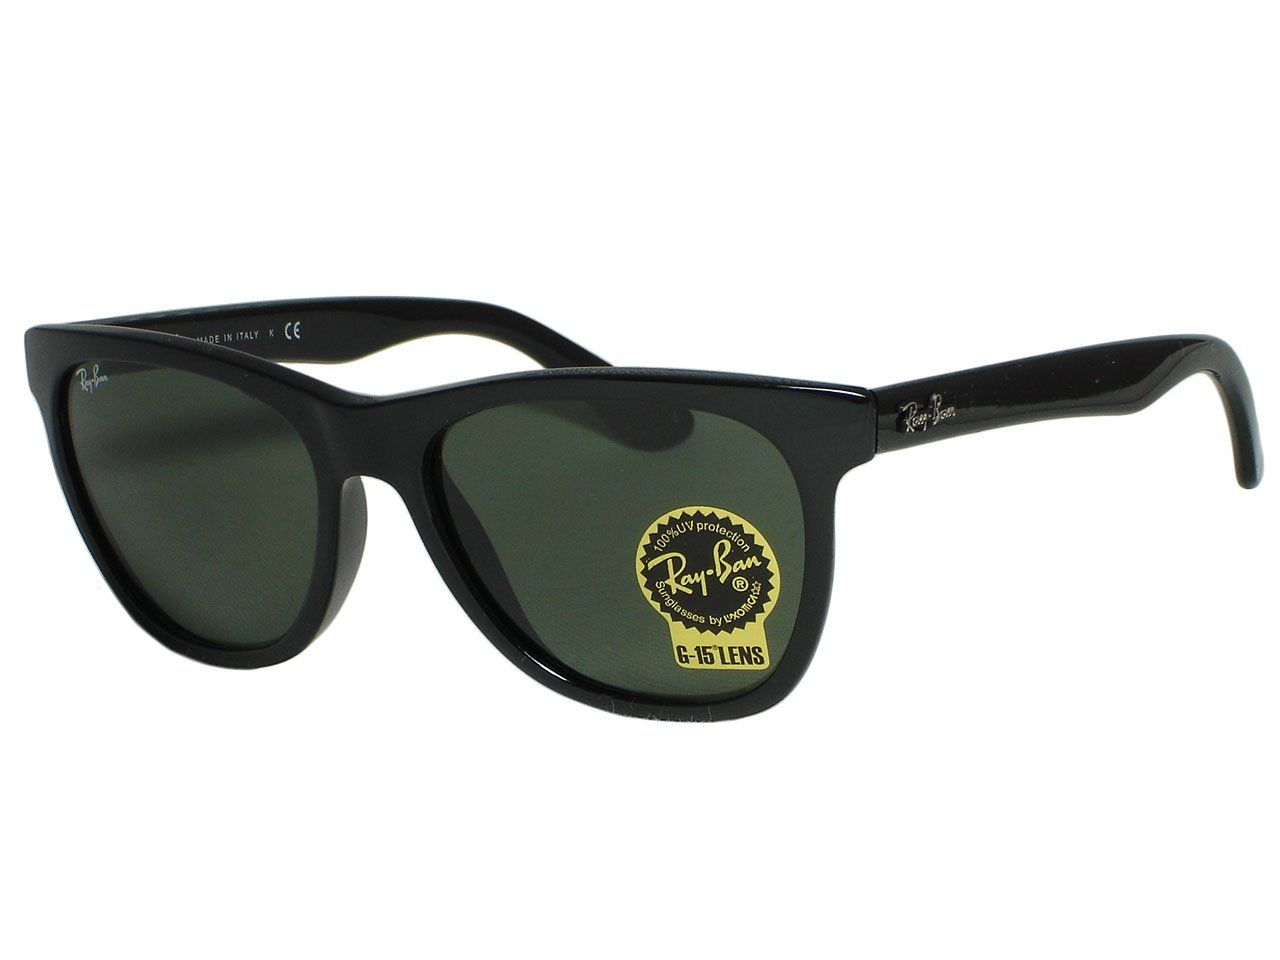 b997046a5d6 Ray Ban RB4184 601 Shiny Black Sunglasses. Includes original case ...